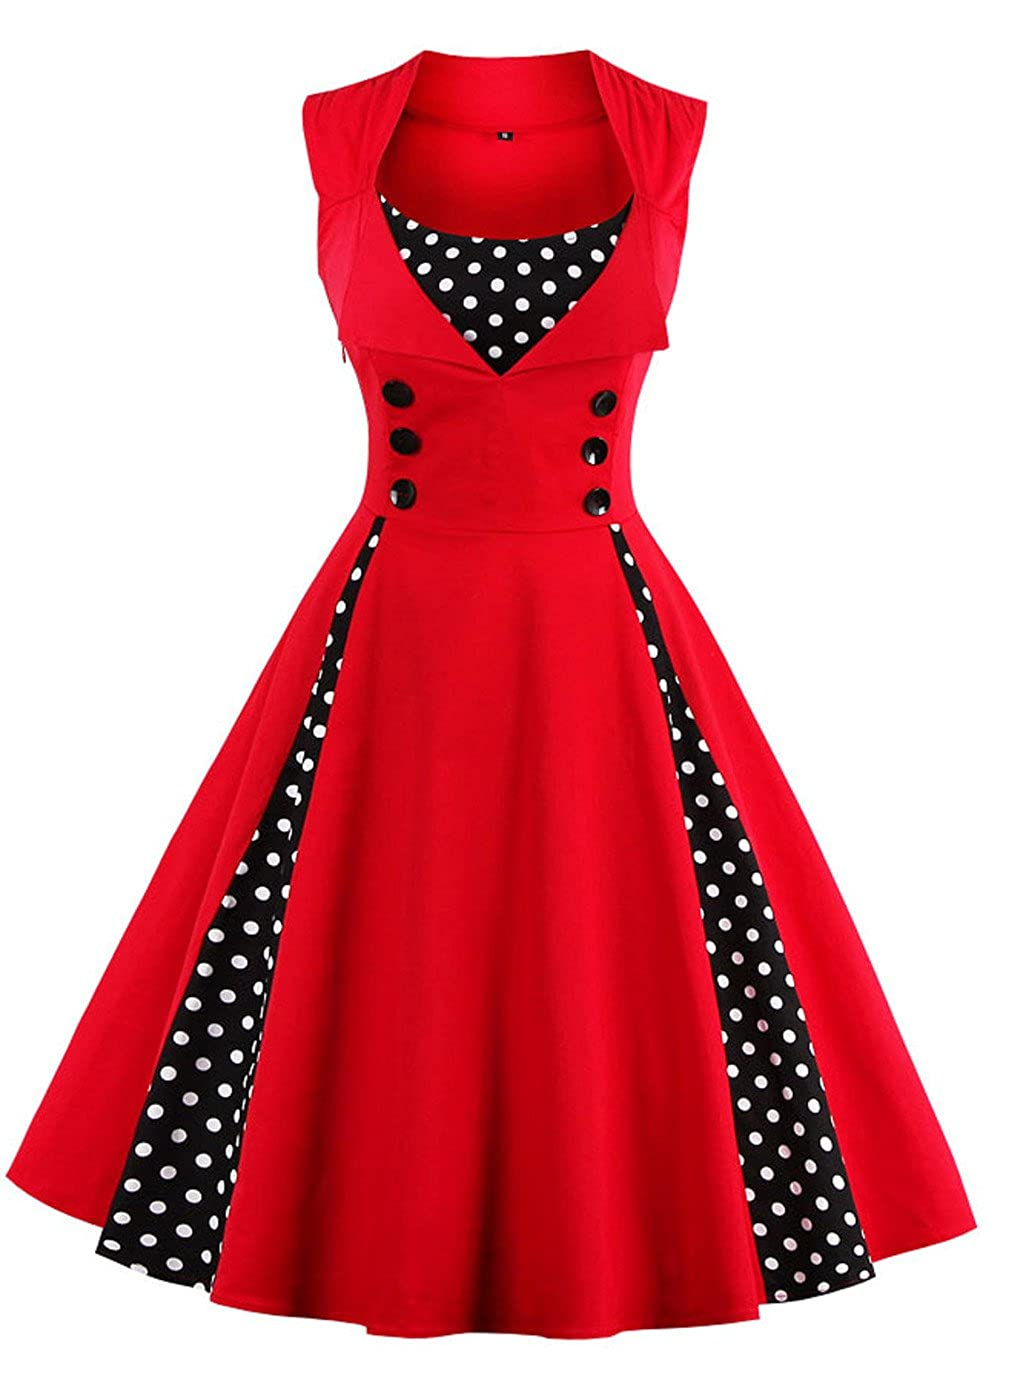 TALLA 3XL. VERNASSA 50s Vestidos Vintage,Mujeres 1950s Vintage A-Line Rockabilly Clásico Verano Dress for Evening Party Cocktail, S-Plus Size 4XL 1357-rojo 3XL